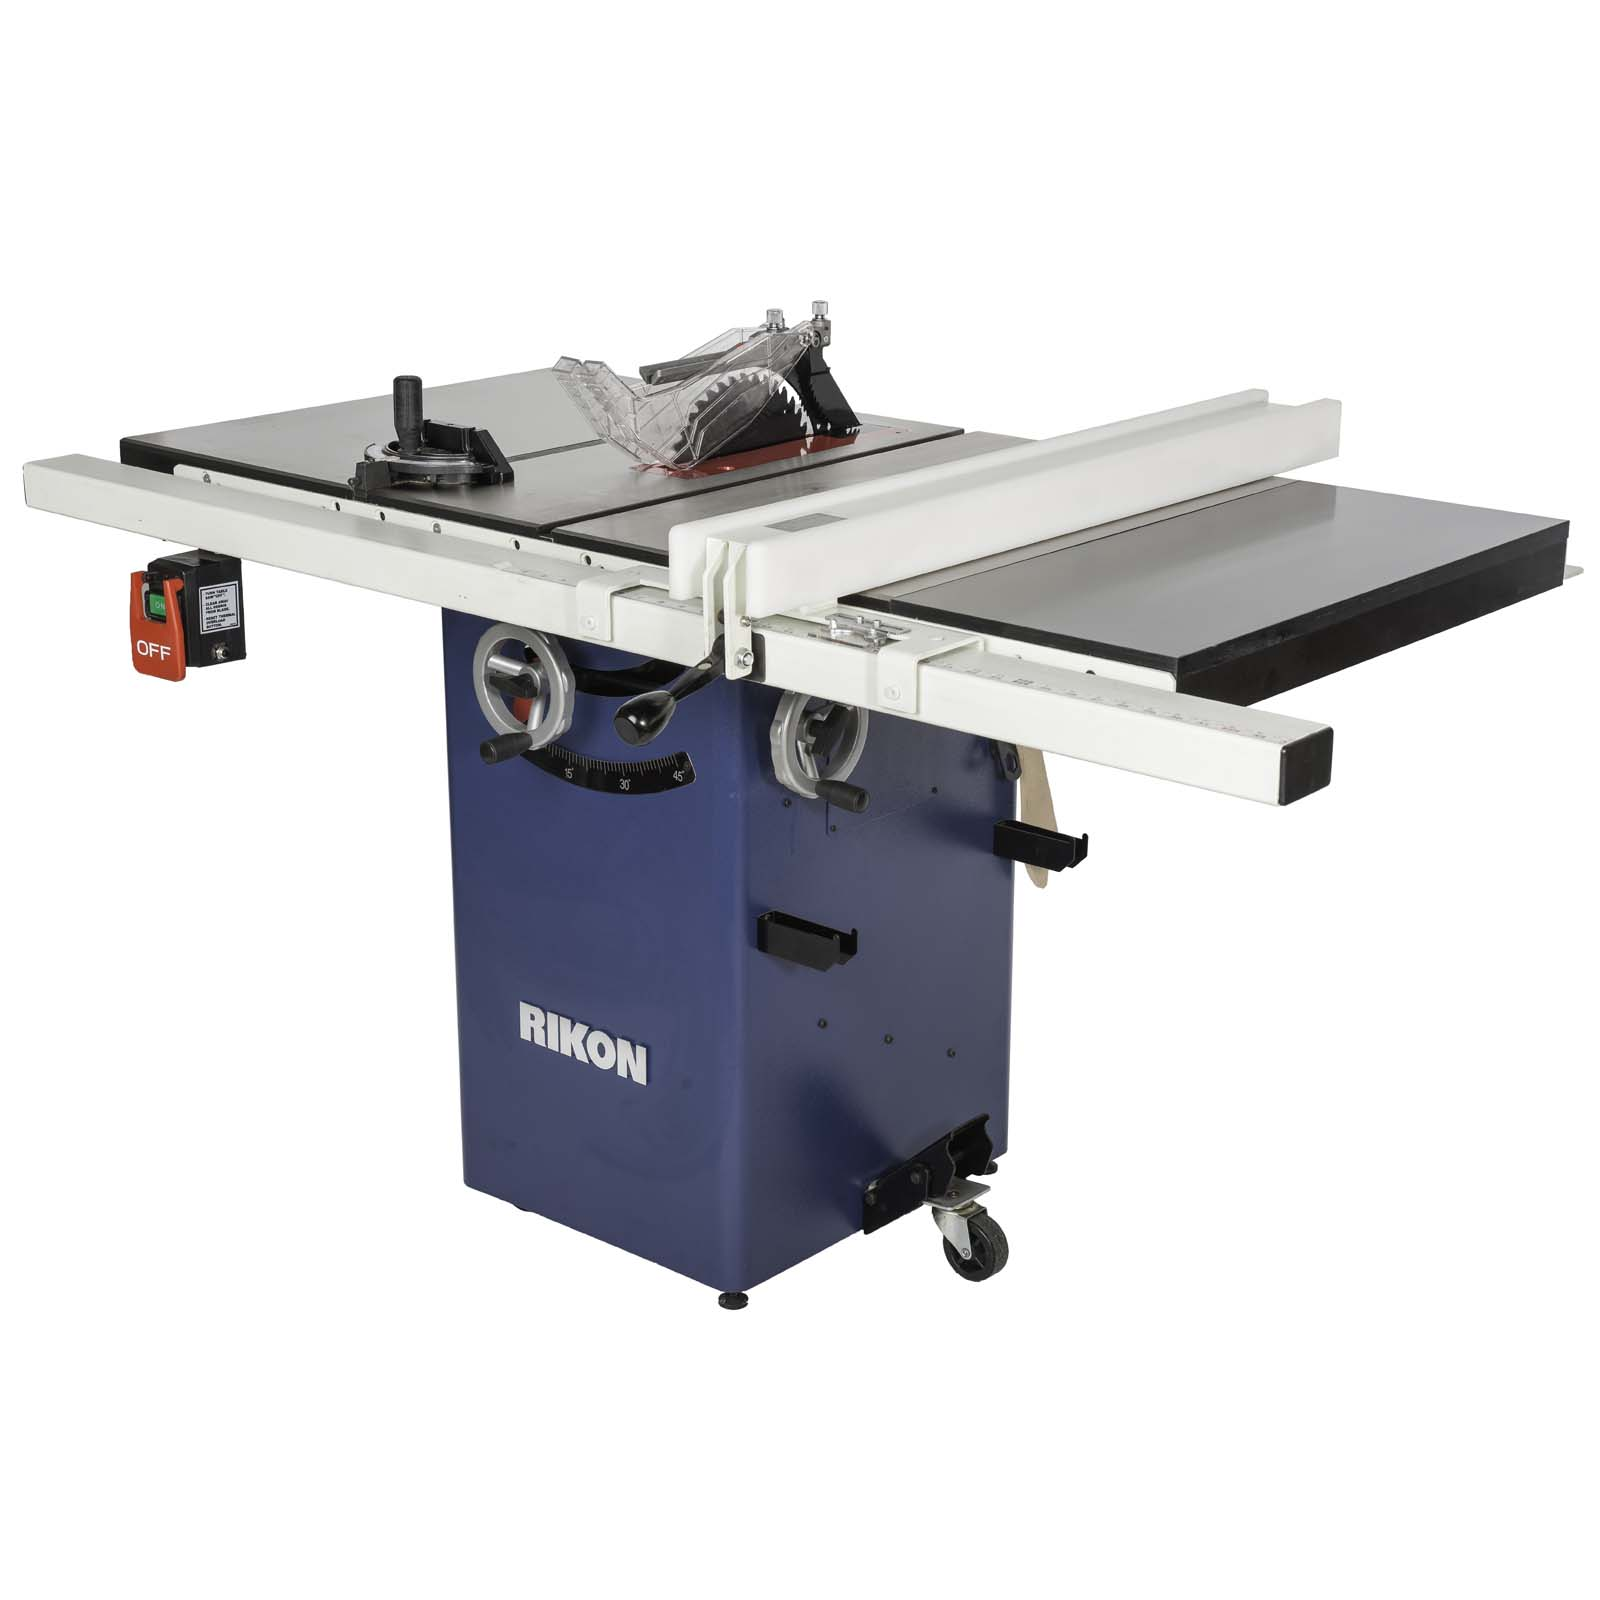 Rikon 10in Deluxe 134in HP Cabinet Saw from BuyMBScom